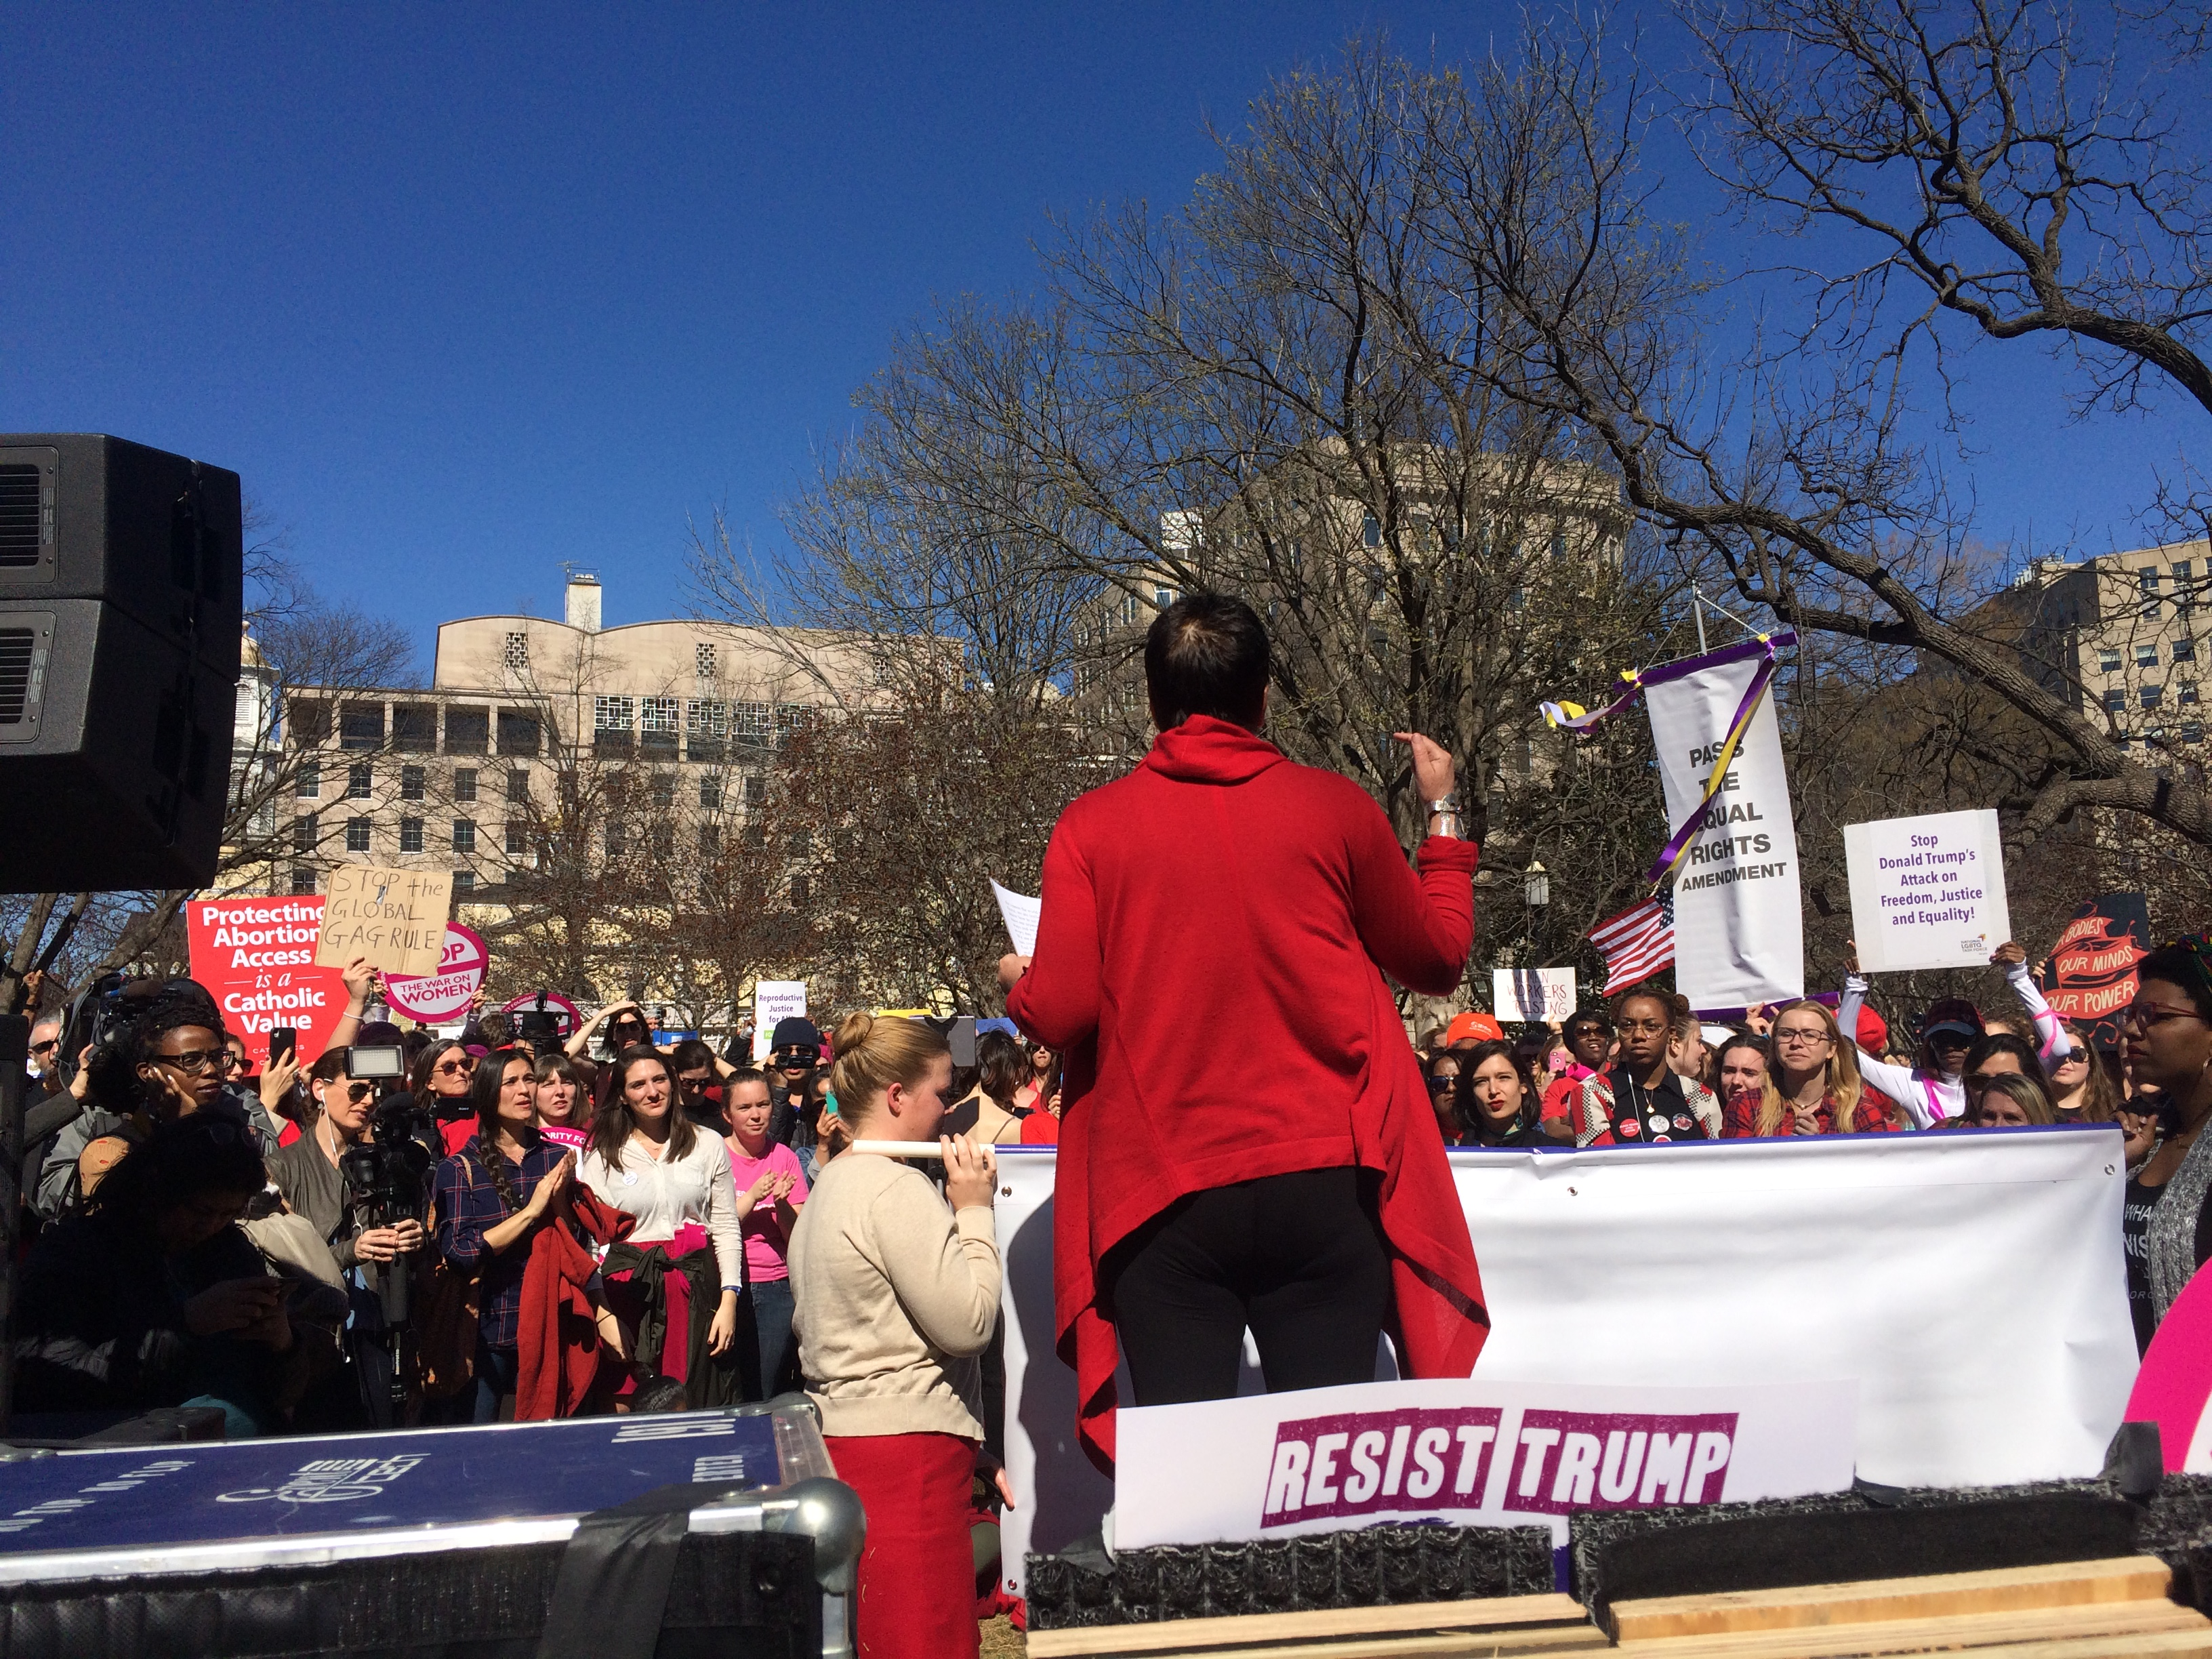 A Day Without a Woman protest (Connor D. Wolf/InsideSources)